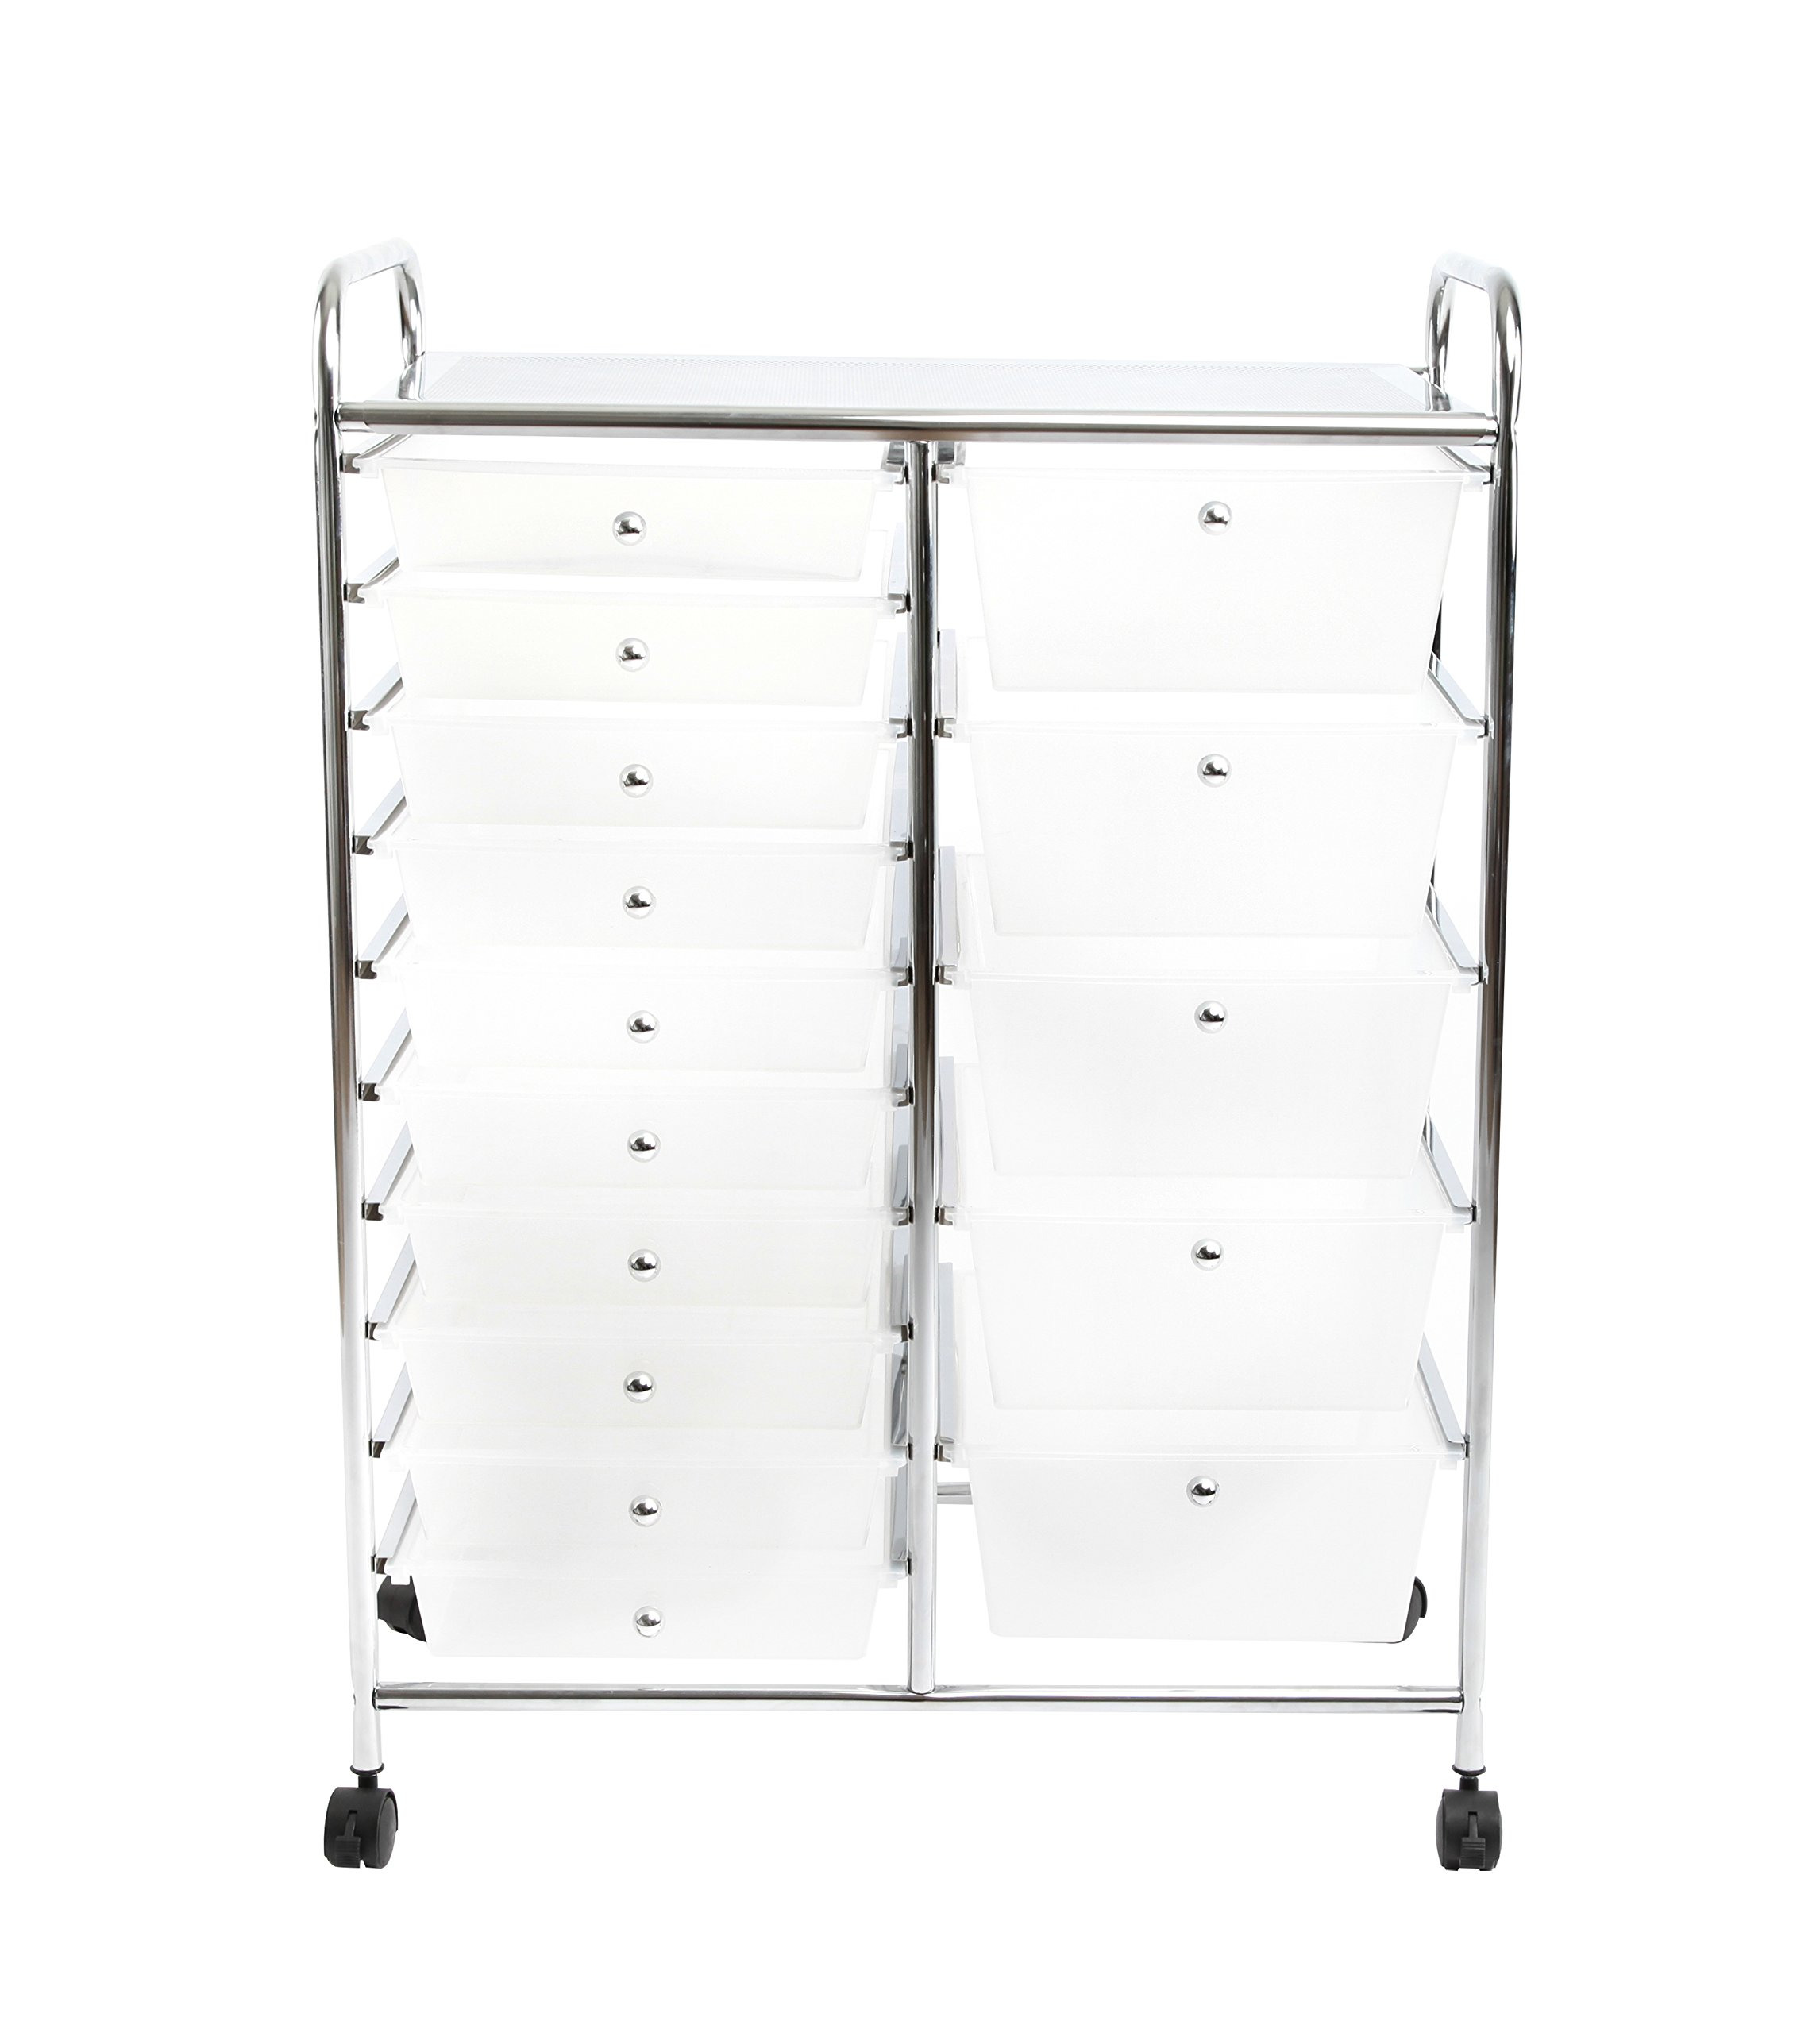 Finnhomy 15 Drawer Rolling Cart Organizer Storage Cart with Drawers Utility Cart for School Office Home Beauty Salon Storage Semi-Transparent White by Finnhomy (Image #2)